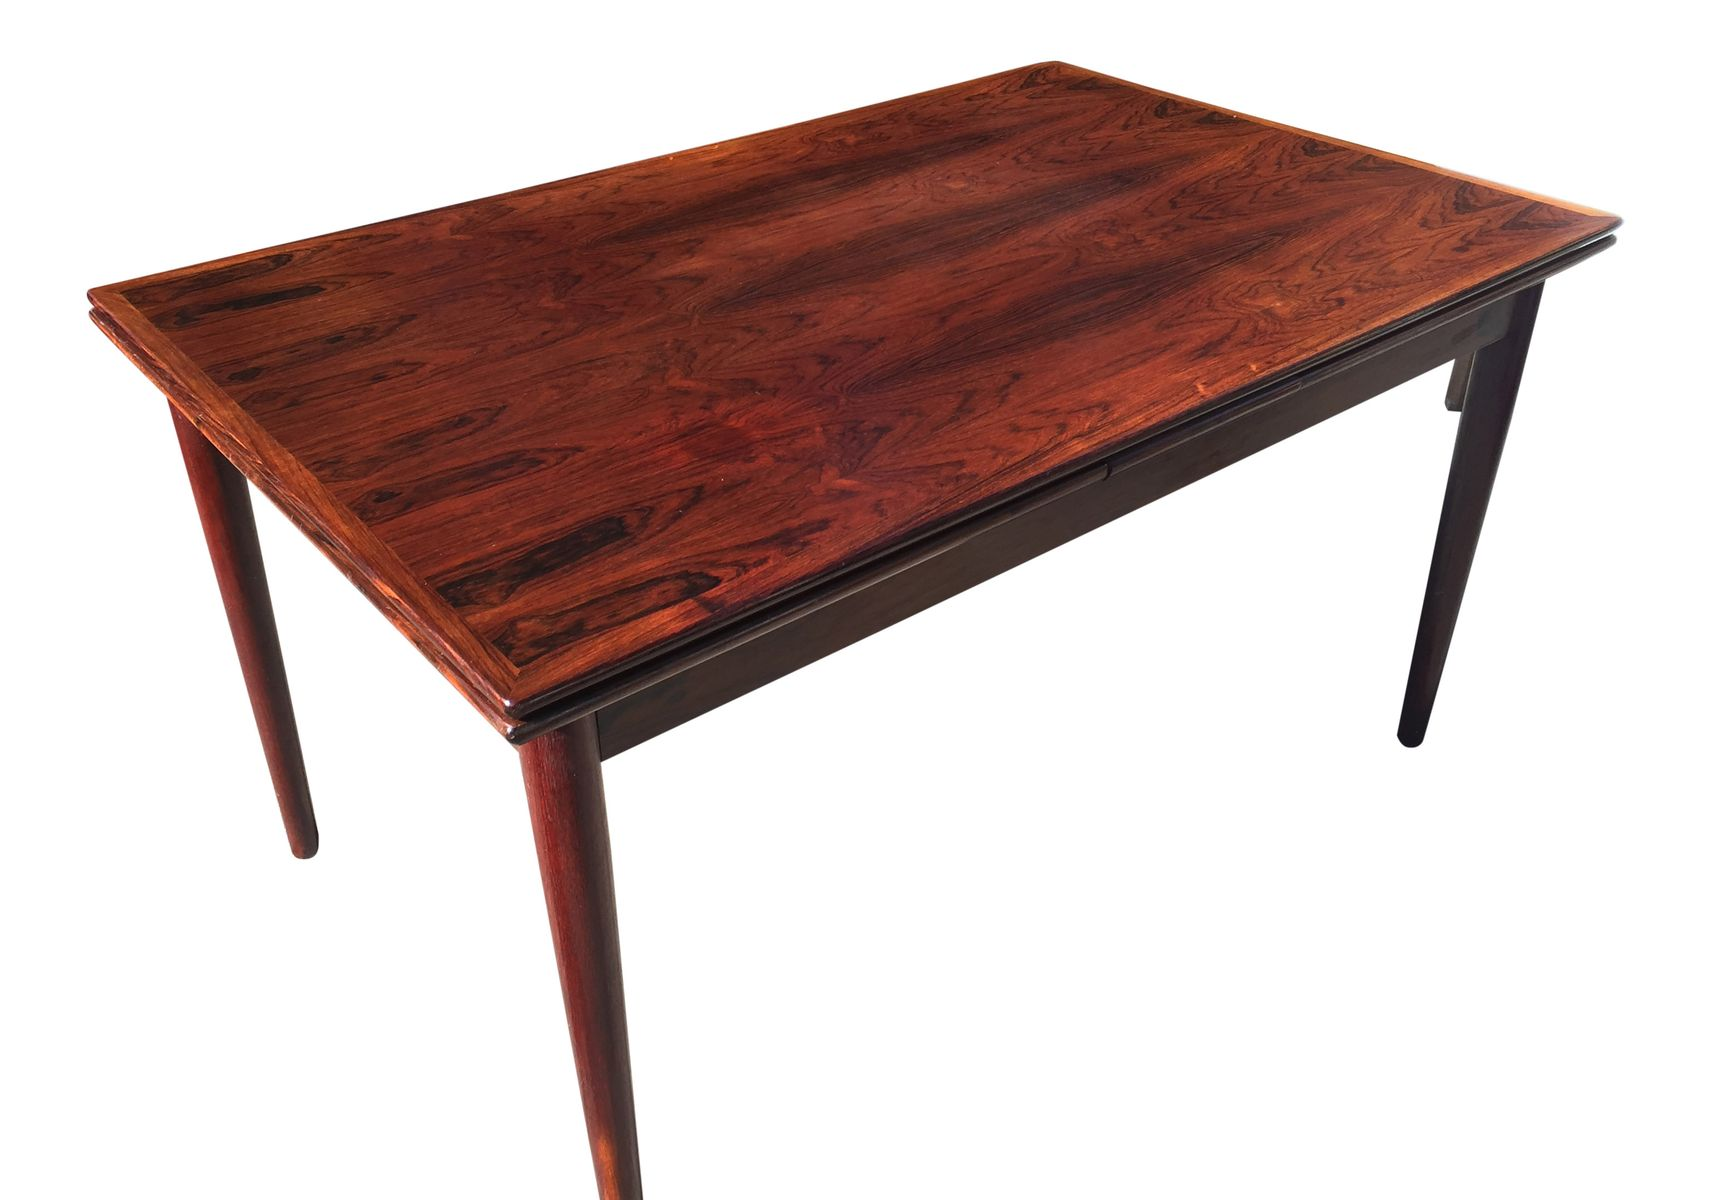 Rosewood Dining Table Vintage Rosewood Dining Table From Hornslet Mbelfabrik 1960s For